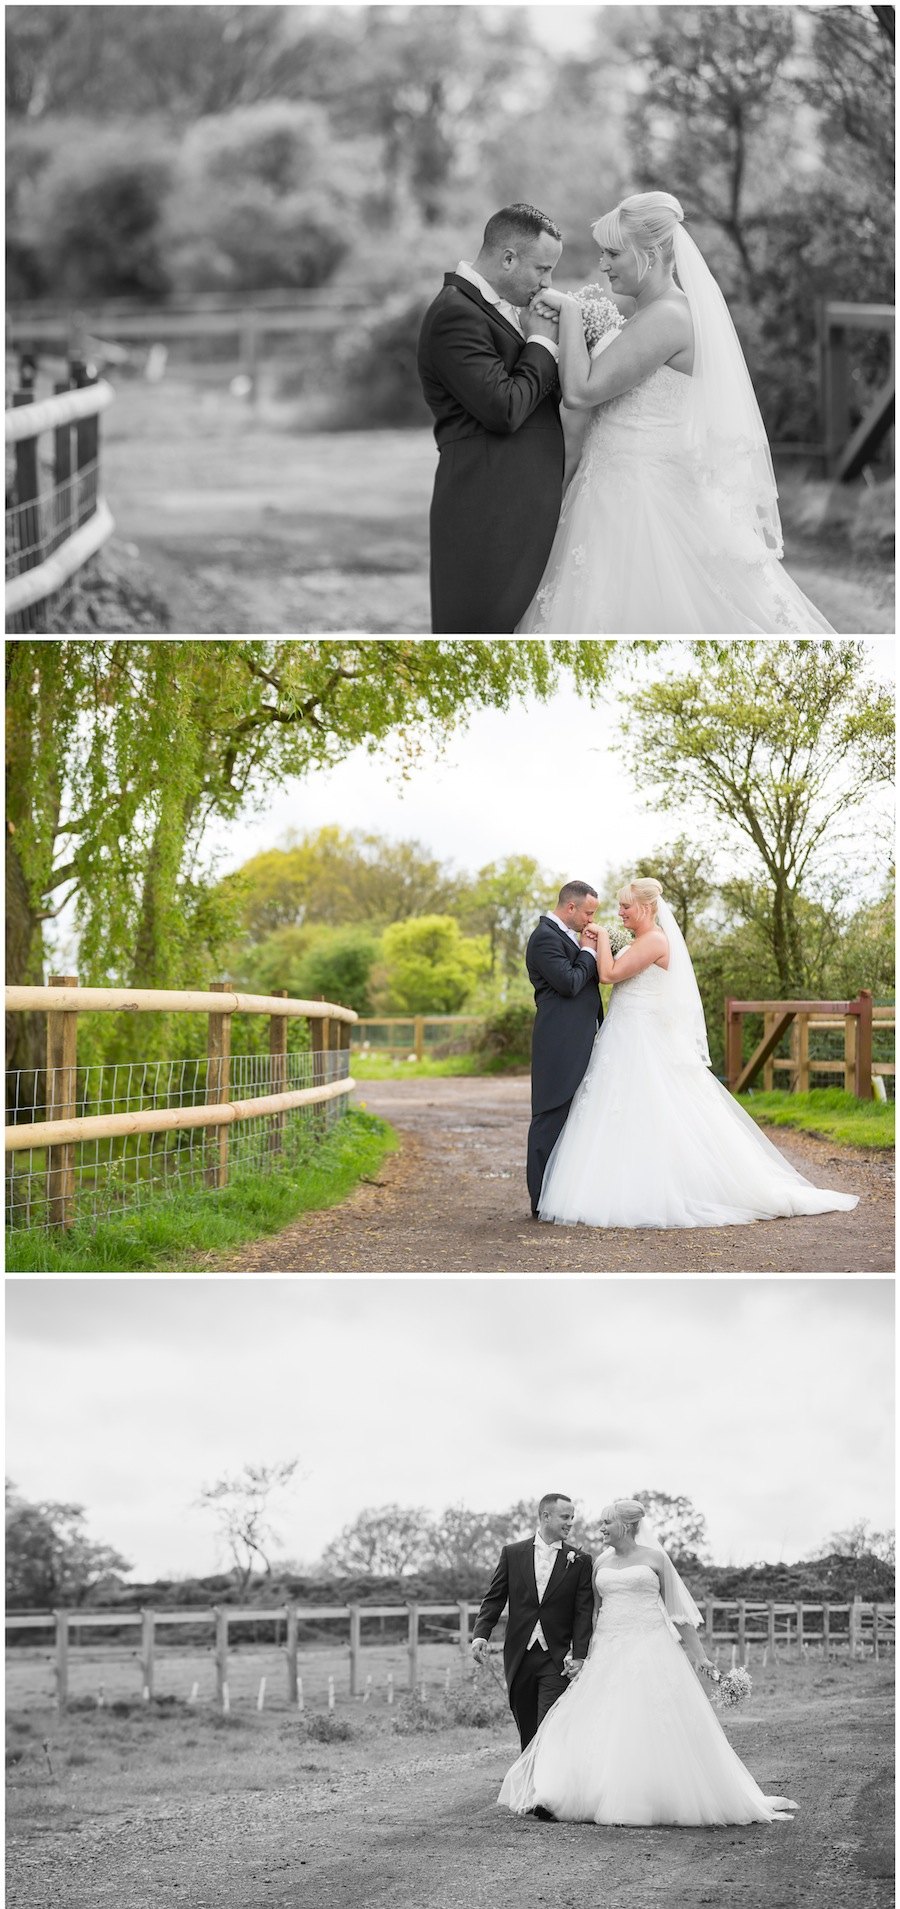 Frasers, Coldharbour Farm wedding photography